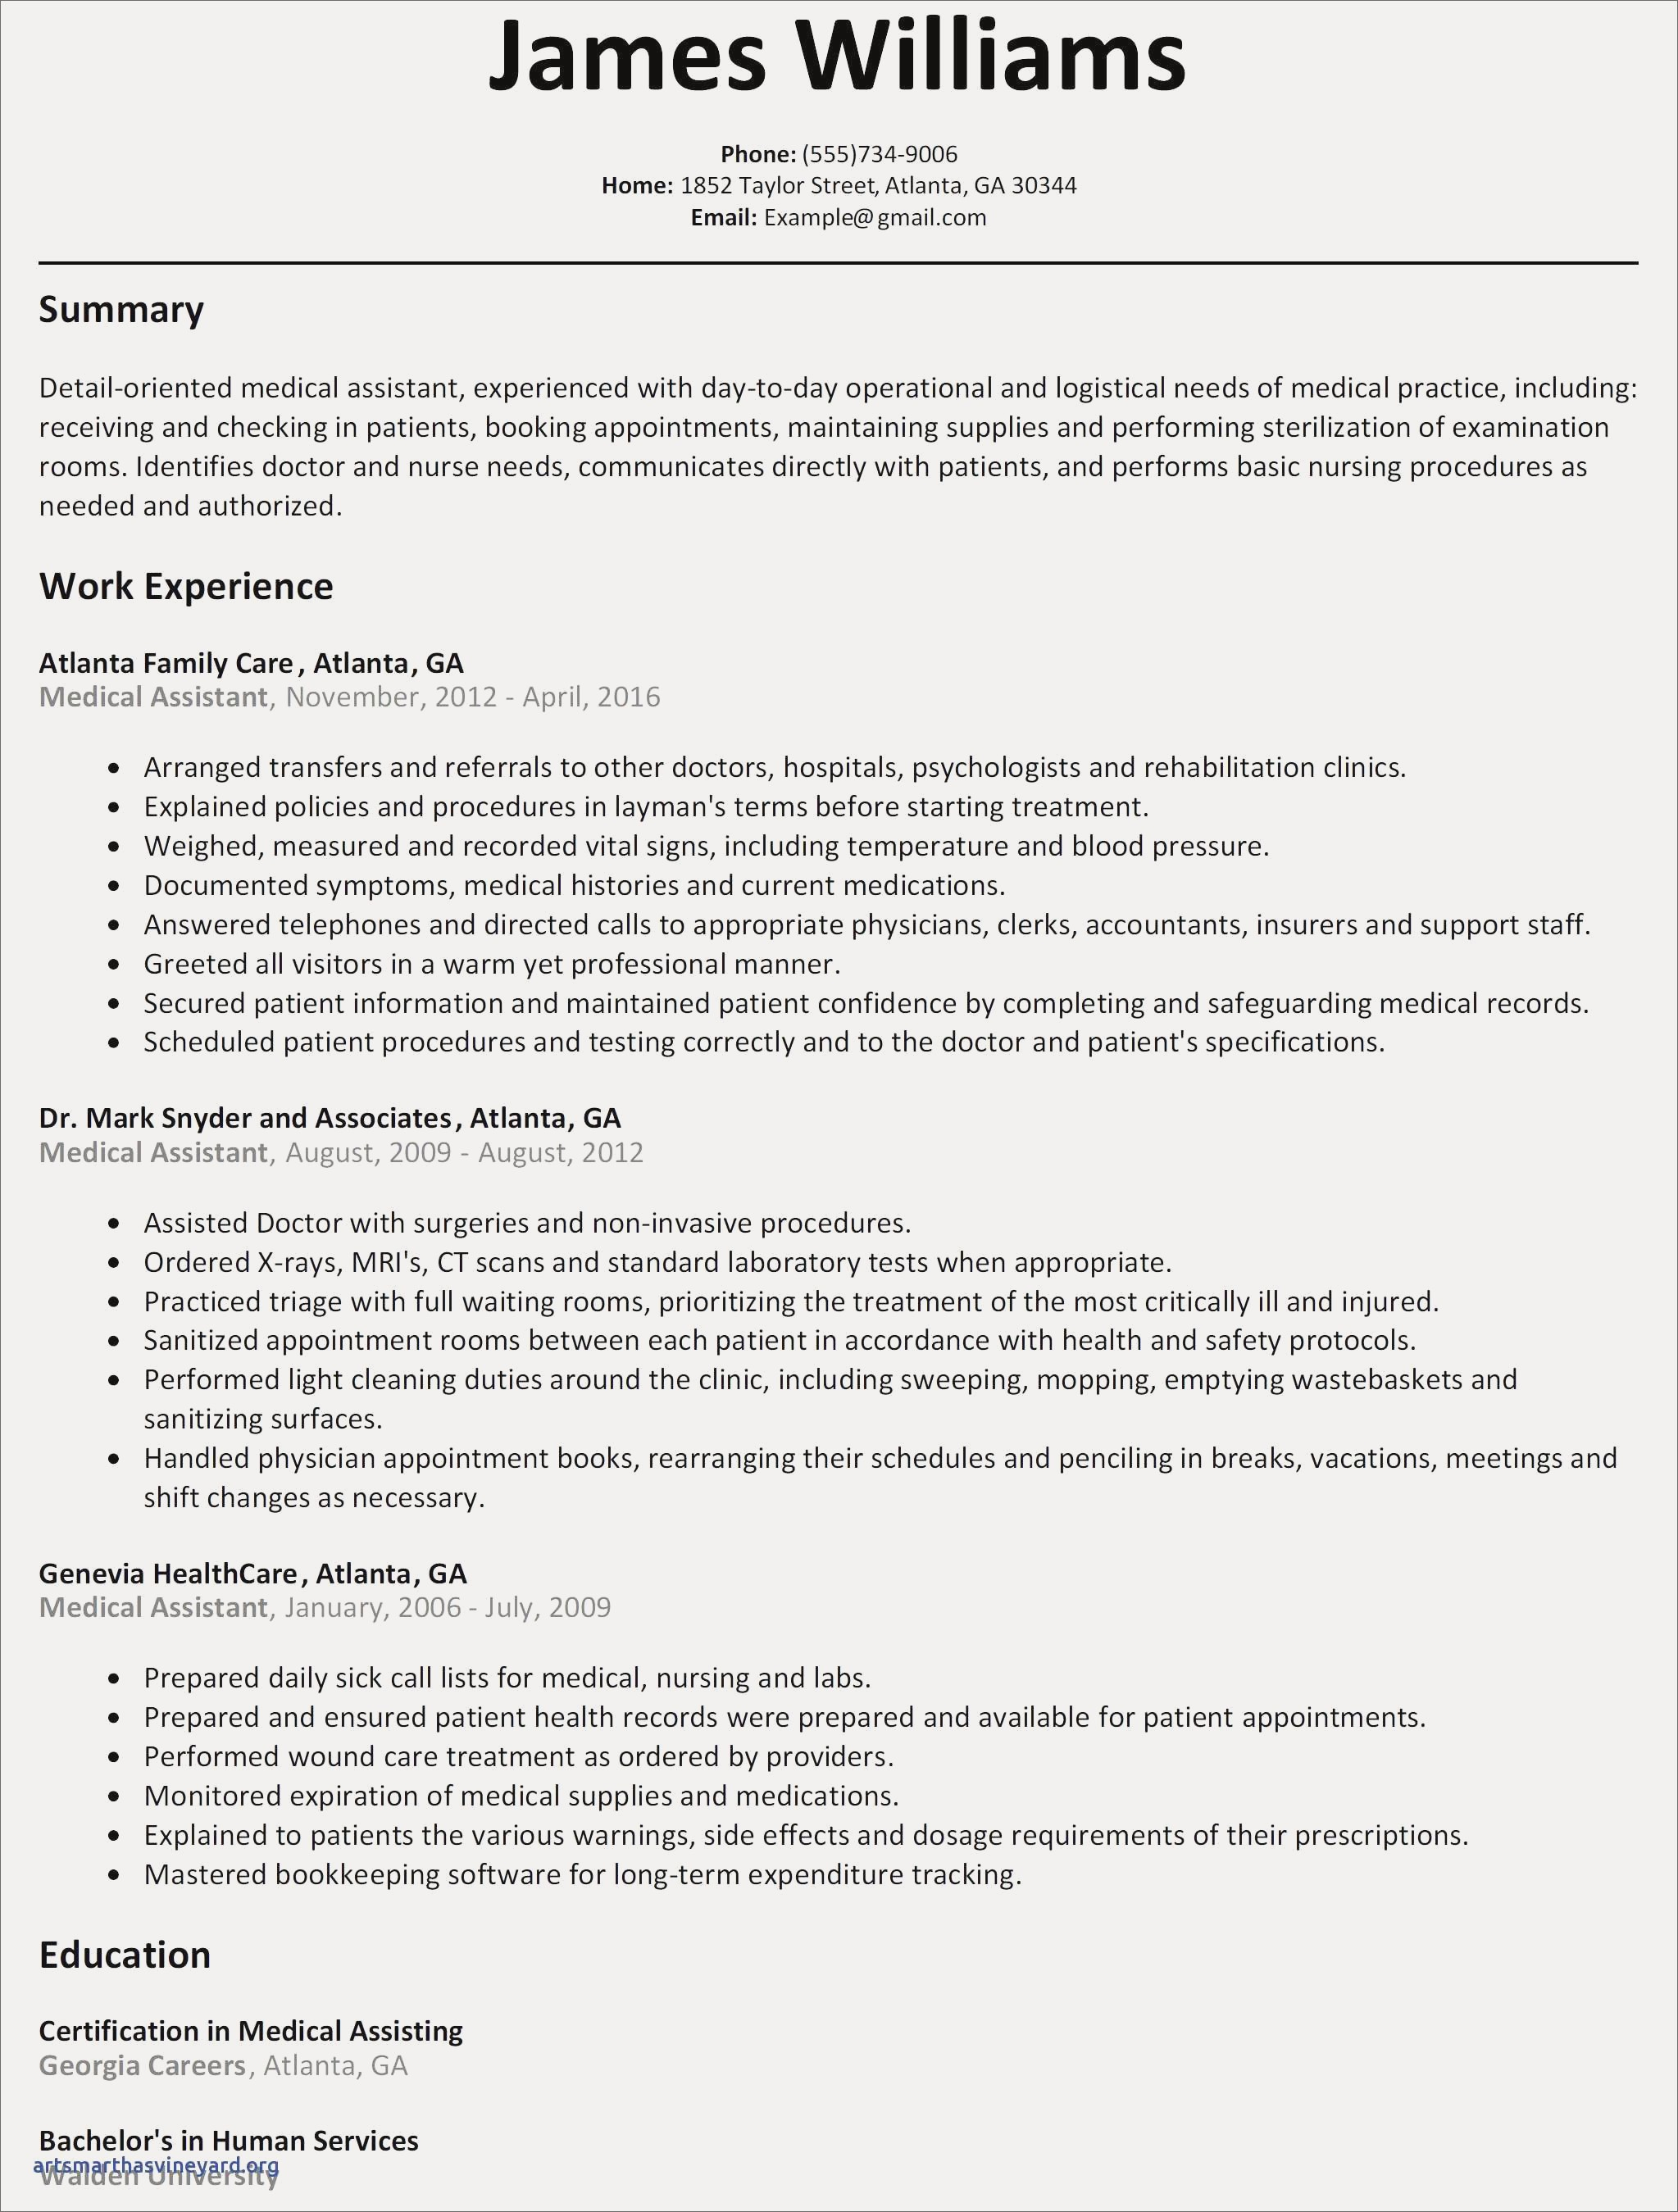 human services resume template Collection-Human Services Resume Samples Best Retail Resume Sample Awesome Resume Template Free Word New Od From 4-t